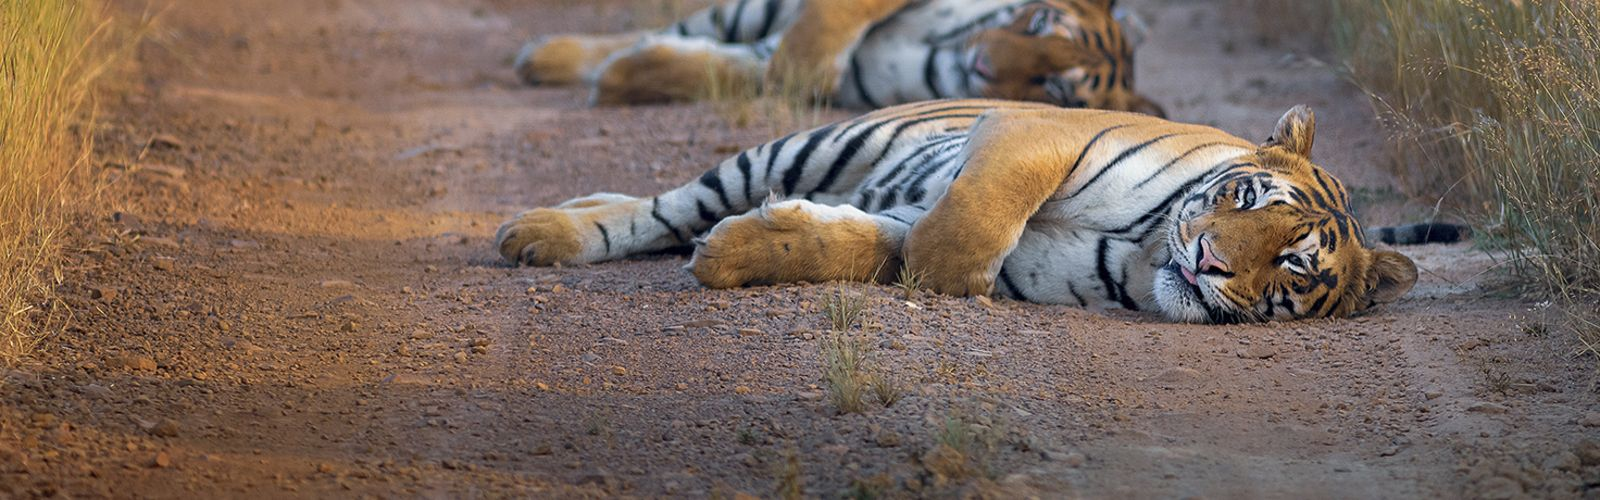 Two young adult tiger cubs rest in the early morning light at Tadoba Andhari Tiger Reserve, India.